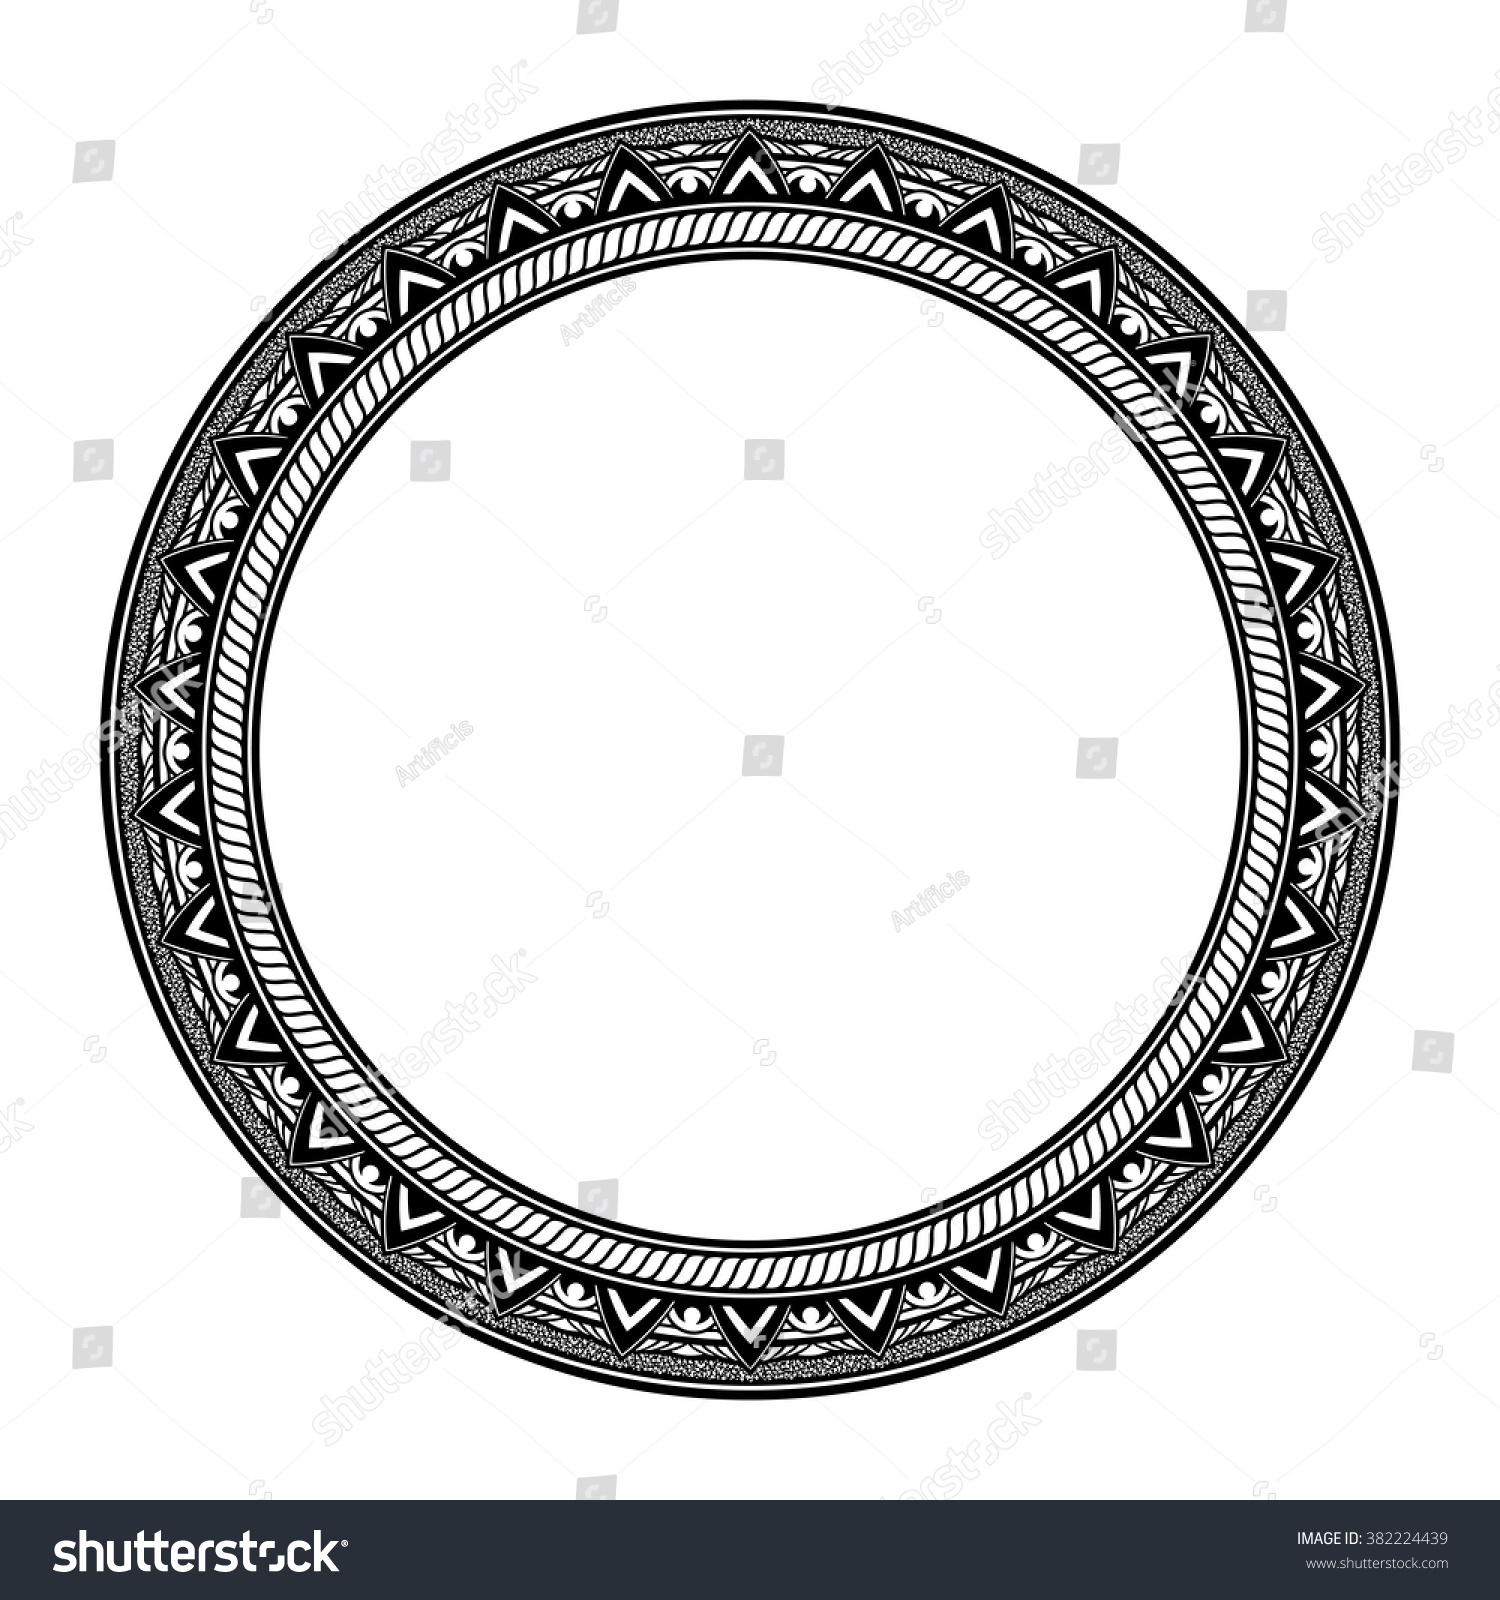 Round Vintage Frame Isolated Victorian Circle Stock Vector ...